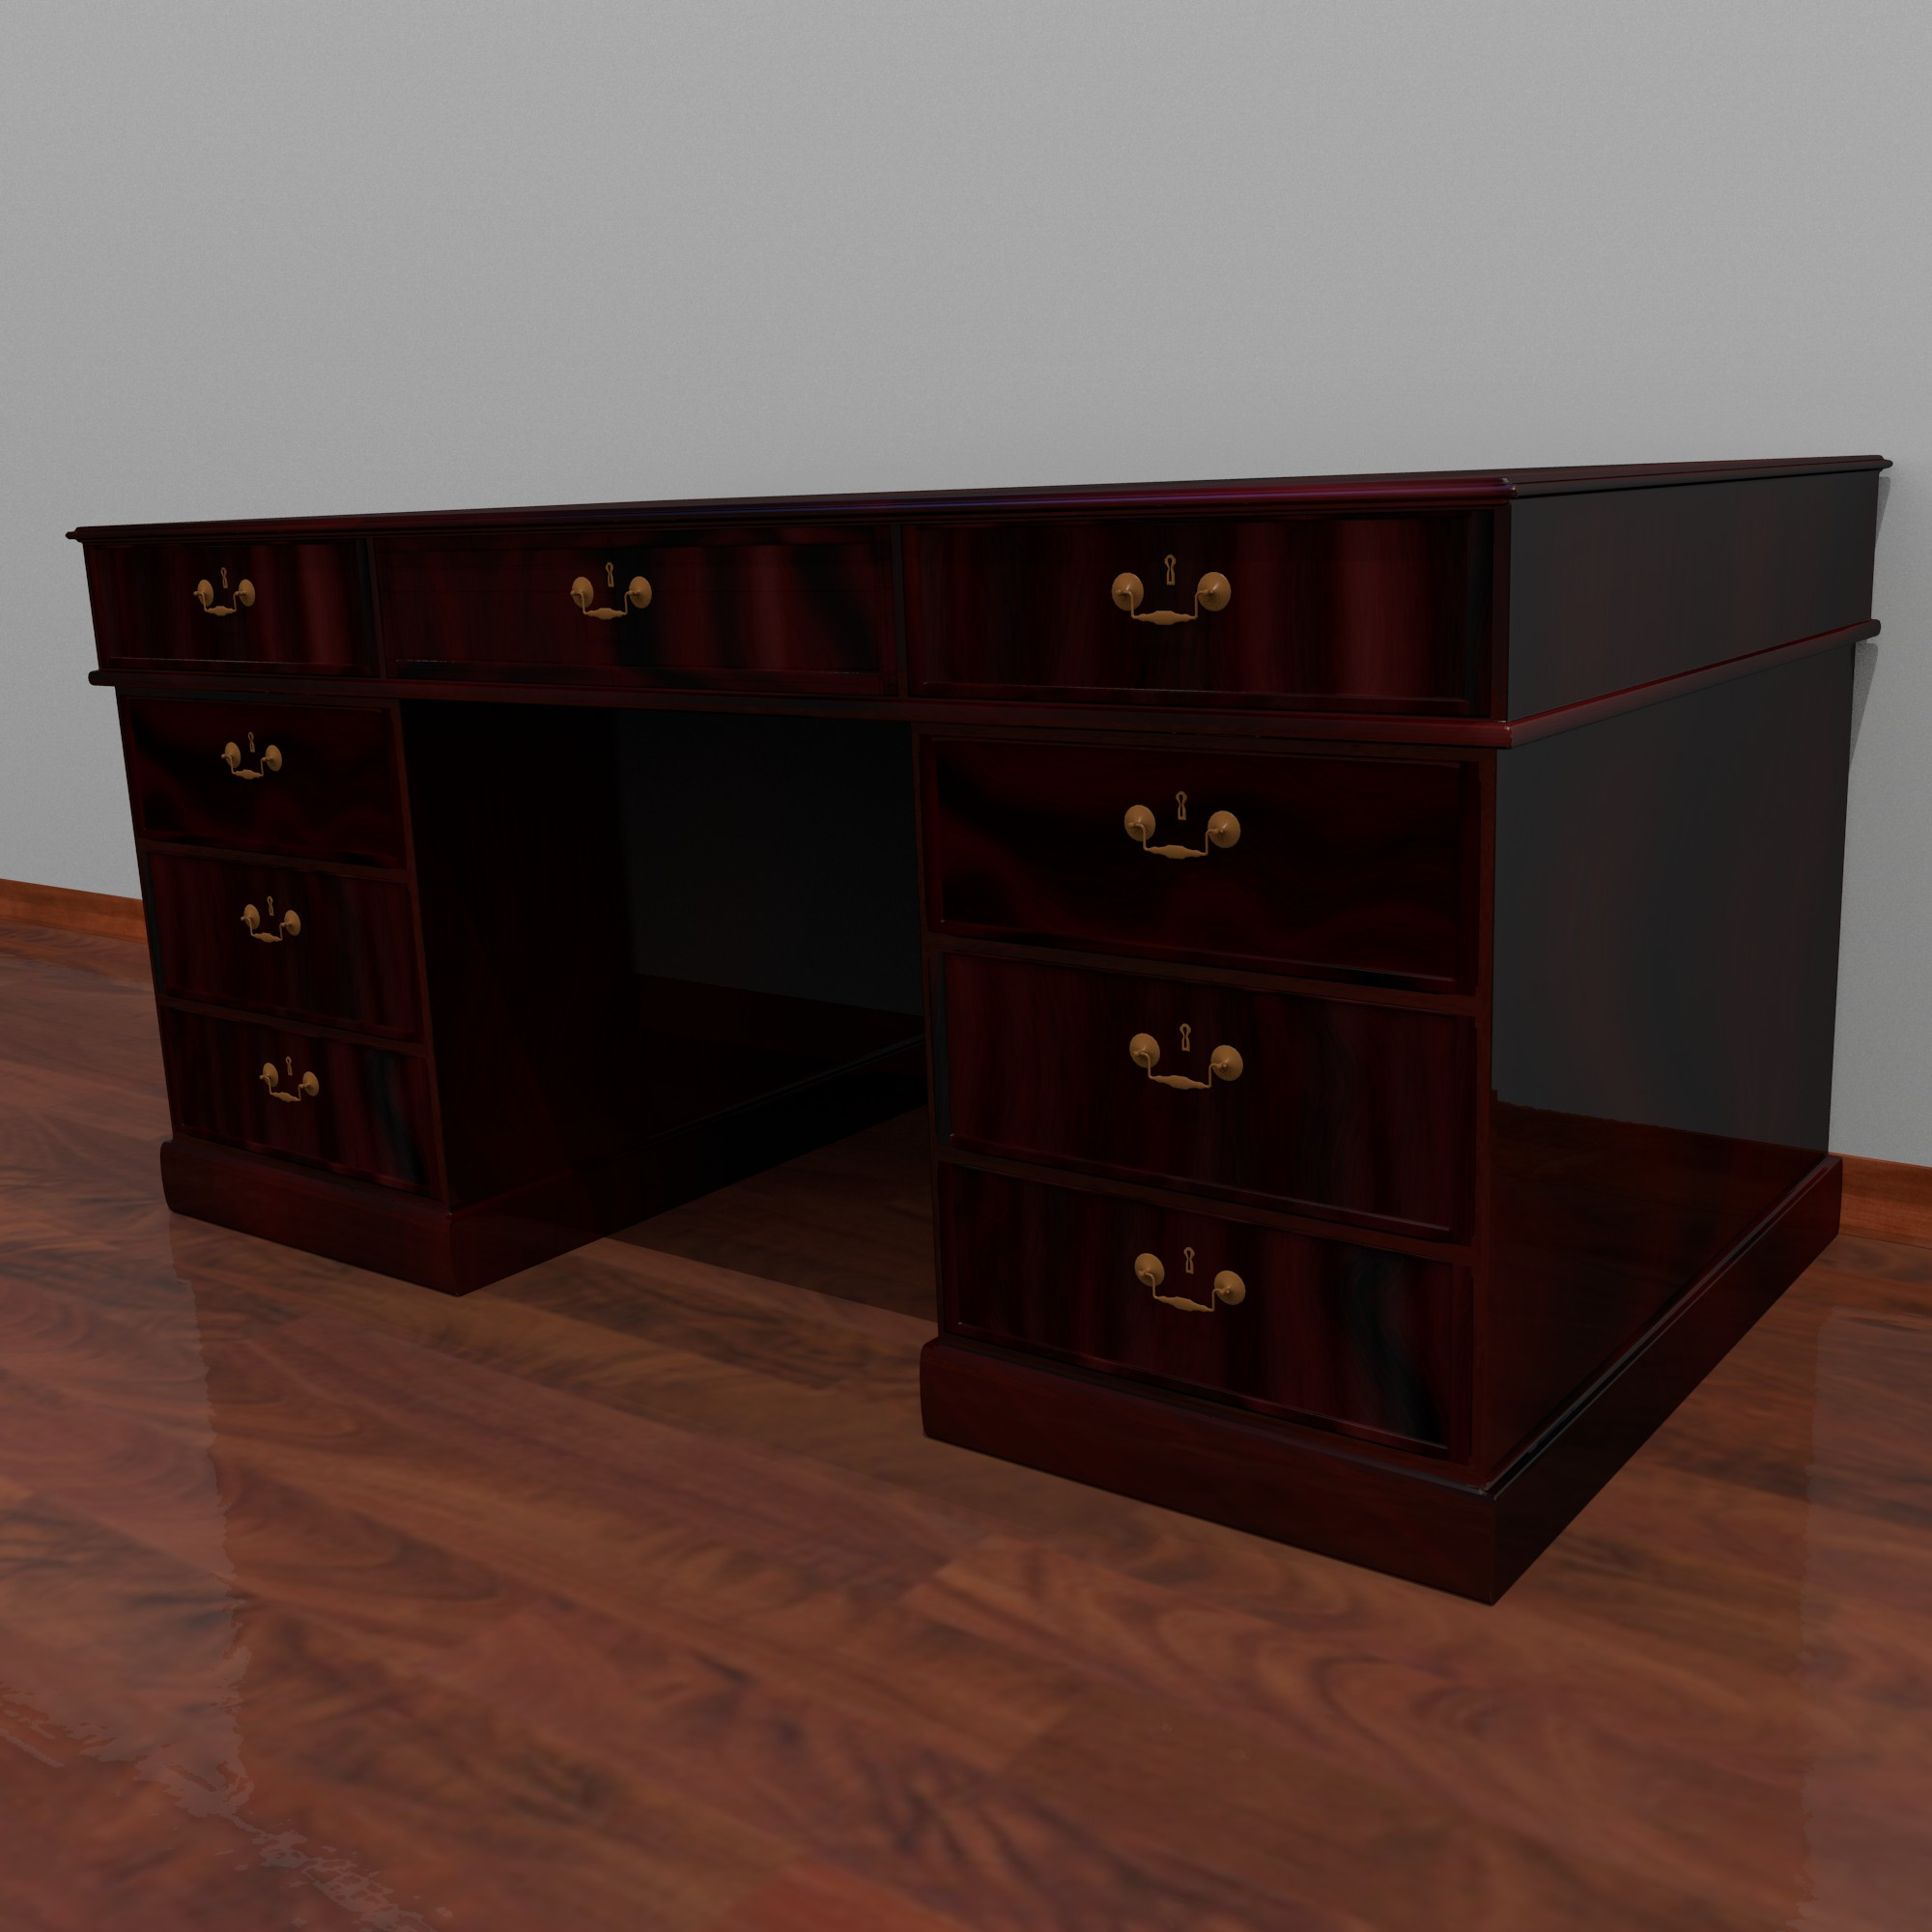 dark wood desk 3d model fbx blend dae obj 117673